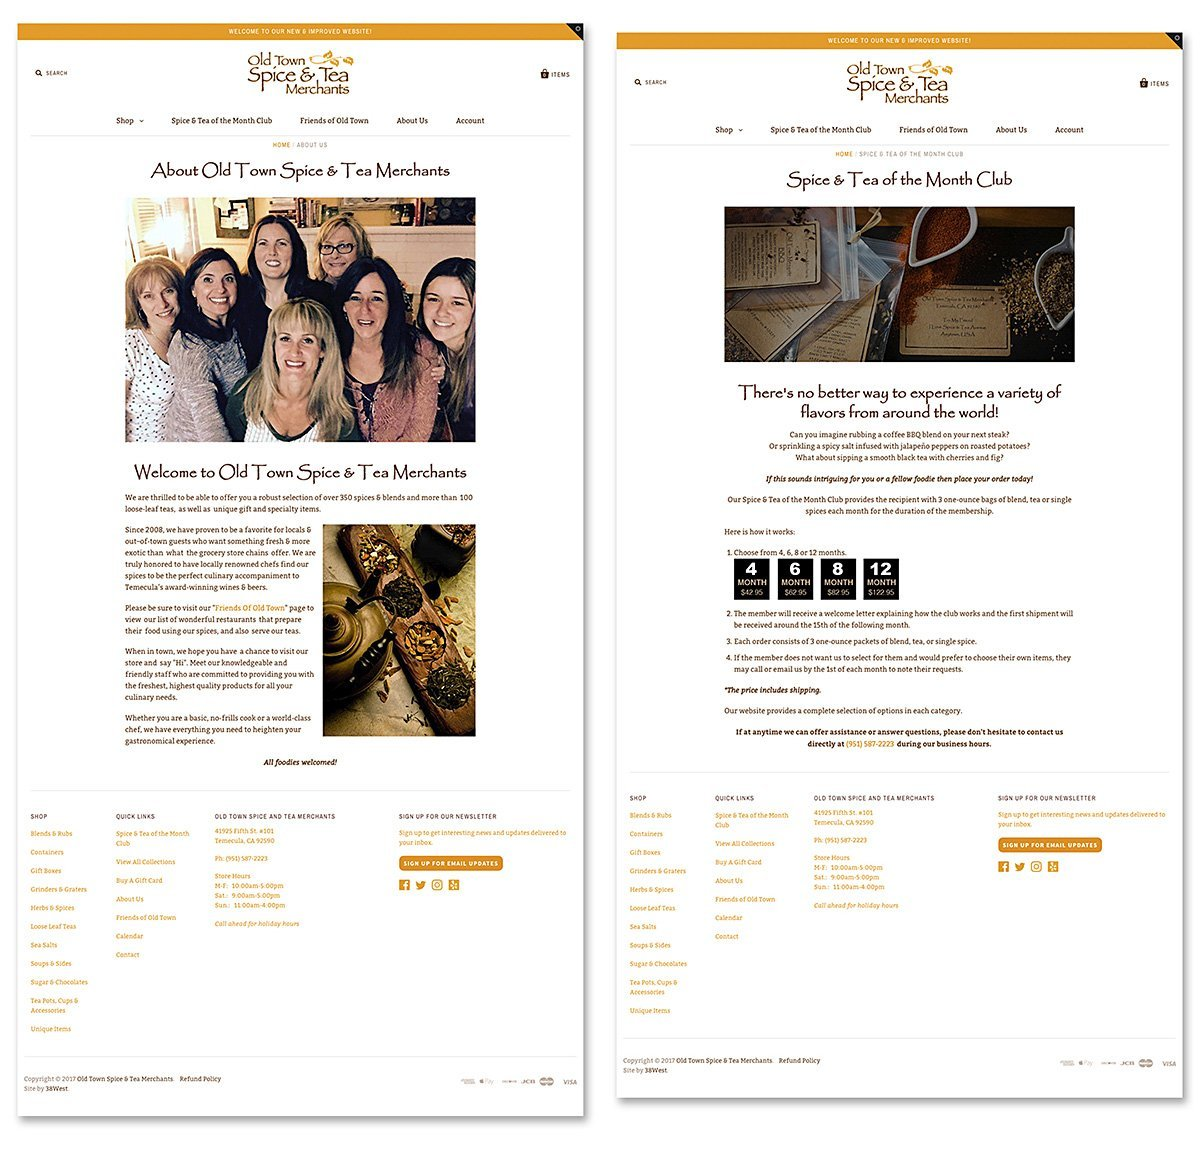 Responsive website design for Old Town Spice and Tea Merchants, Temecula, CA | 38West Best Web Design & Creative Marketing Agency in Orange County, CA